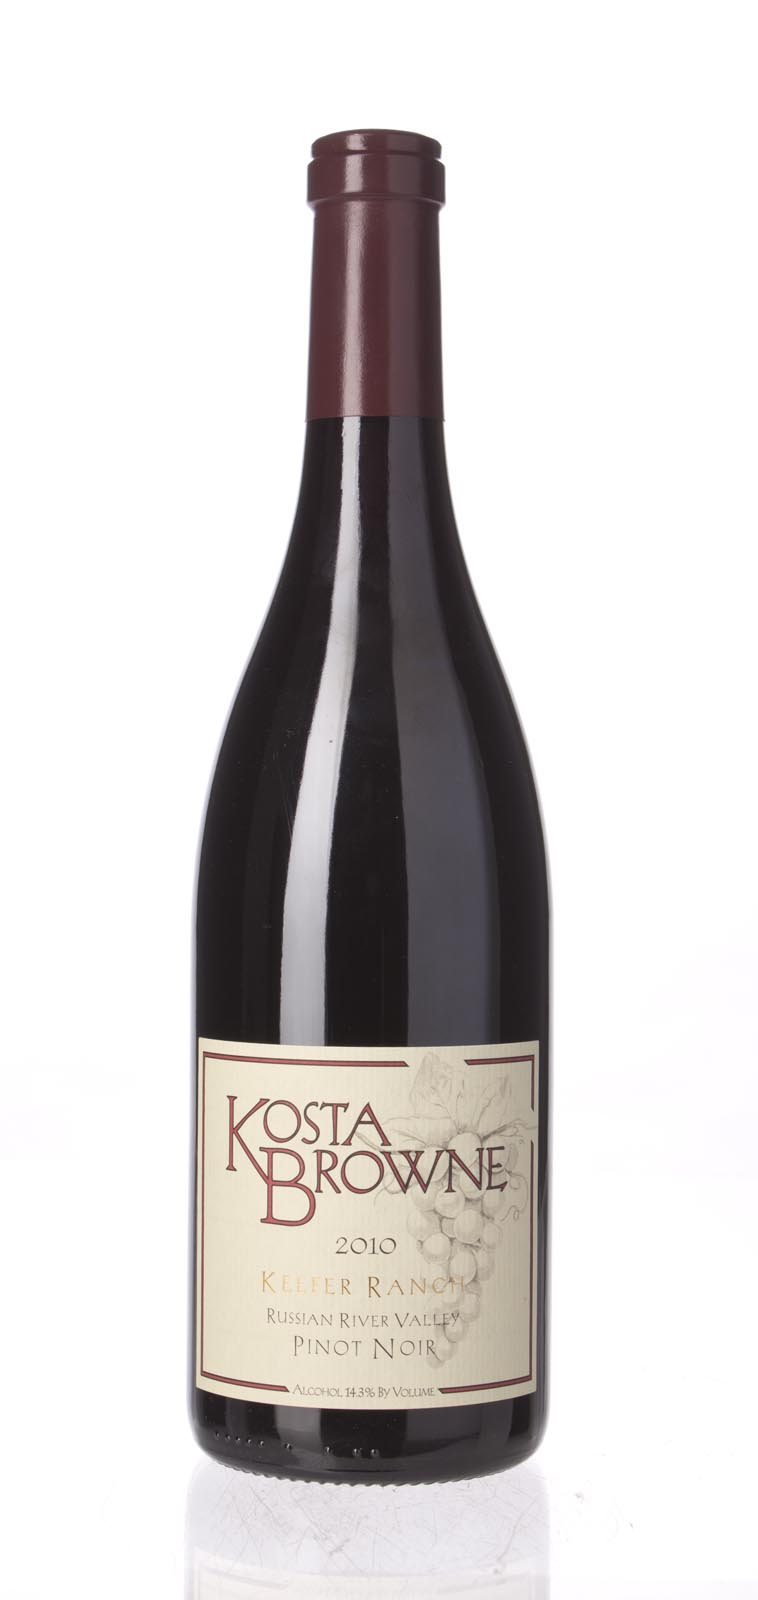 Kosta Browne Pinot Noir Keefer Ranch 2010, 750mL (ST93, WS93) from The BPW - Merchants of rare and fine wines.